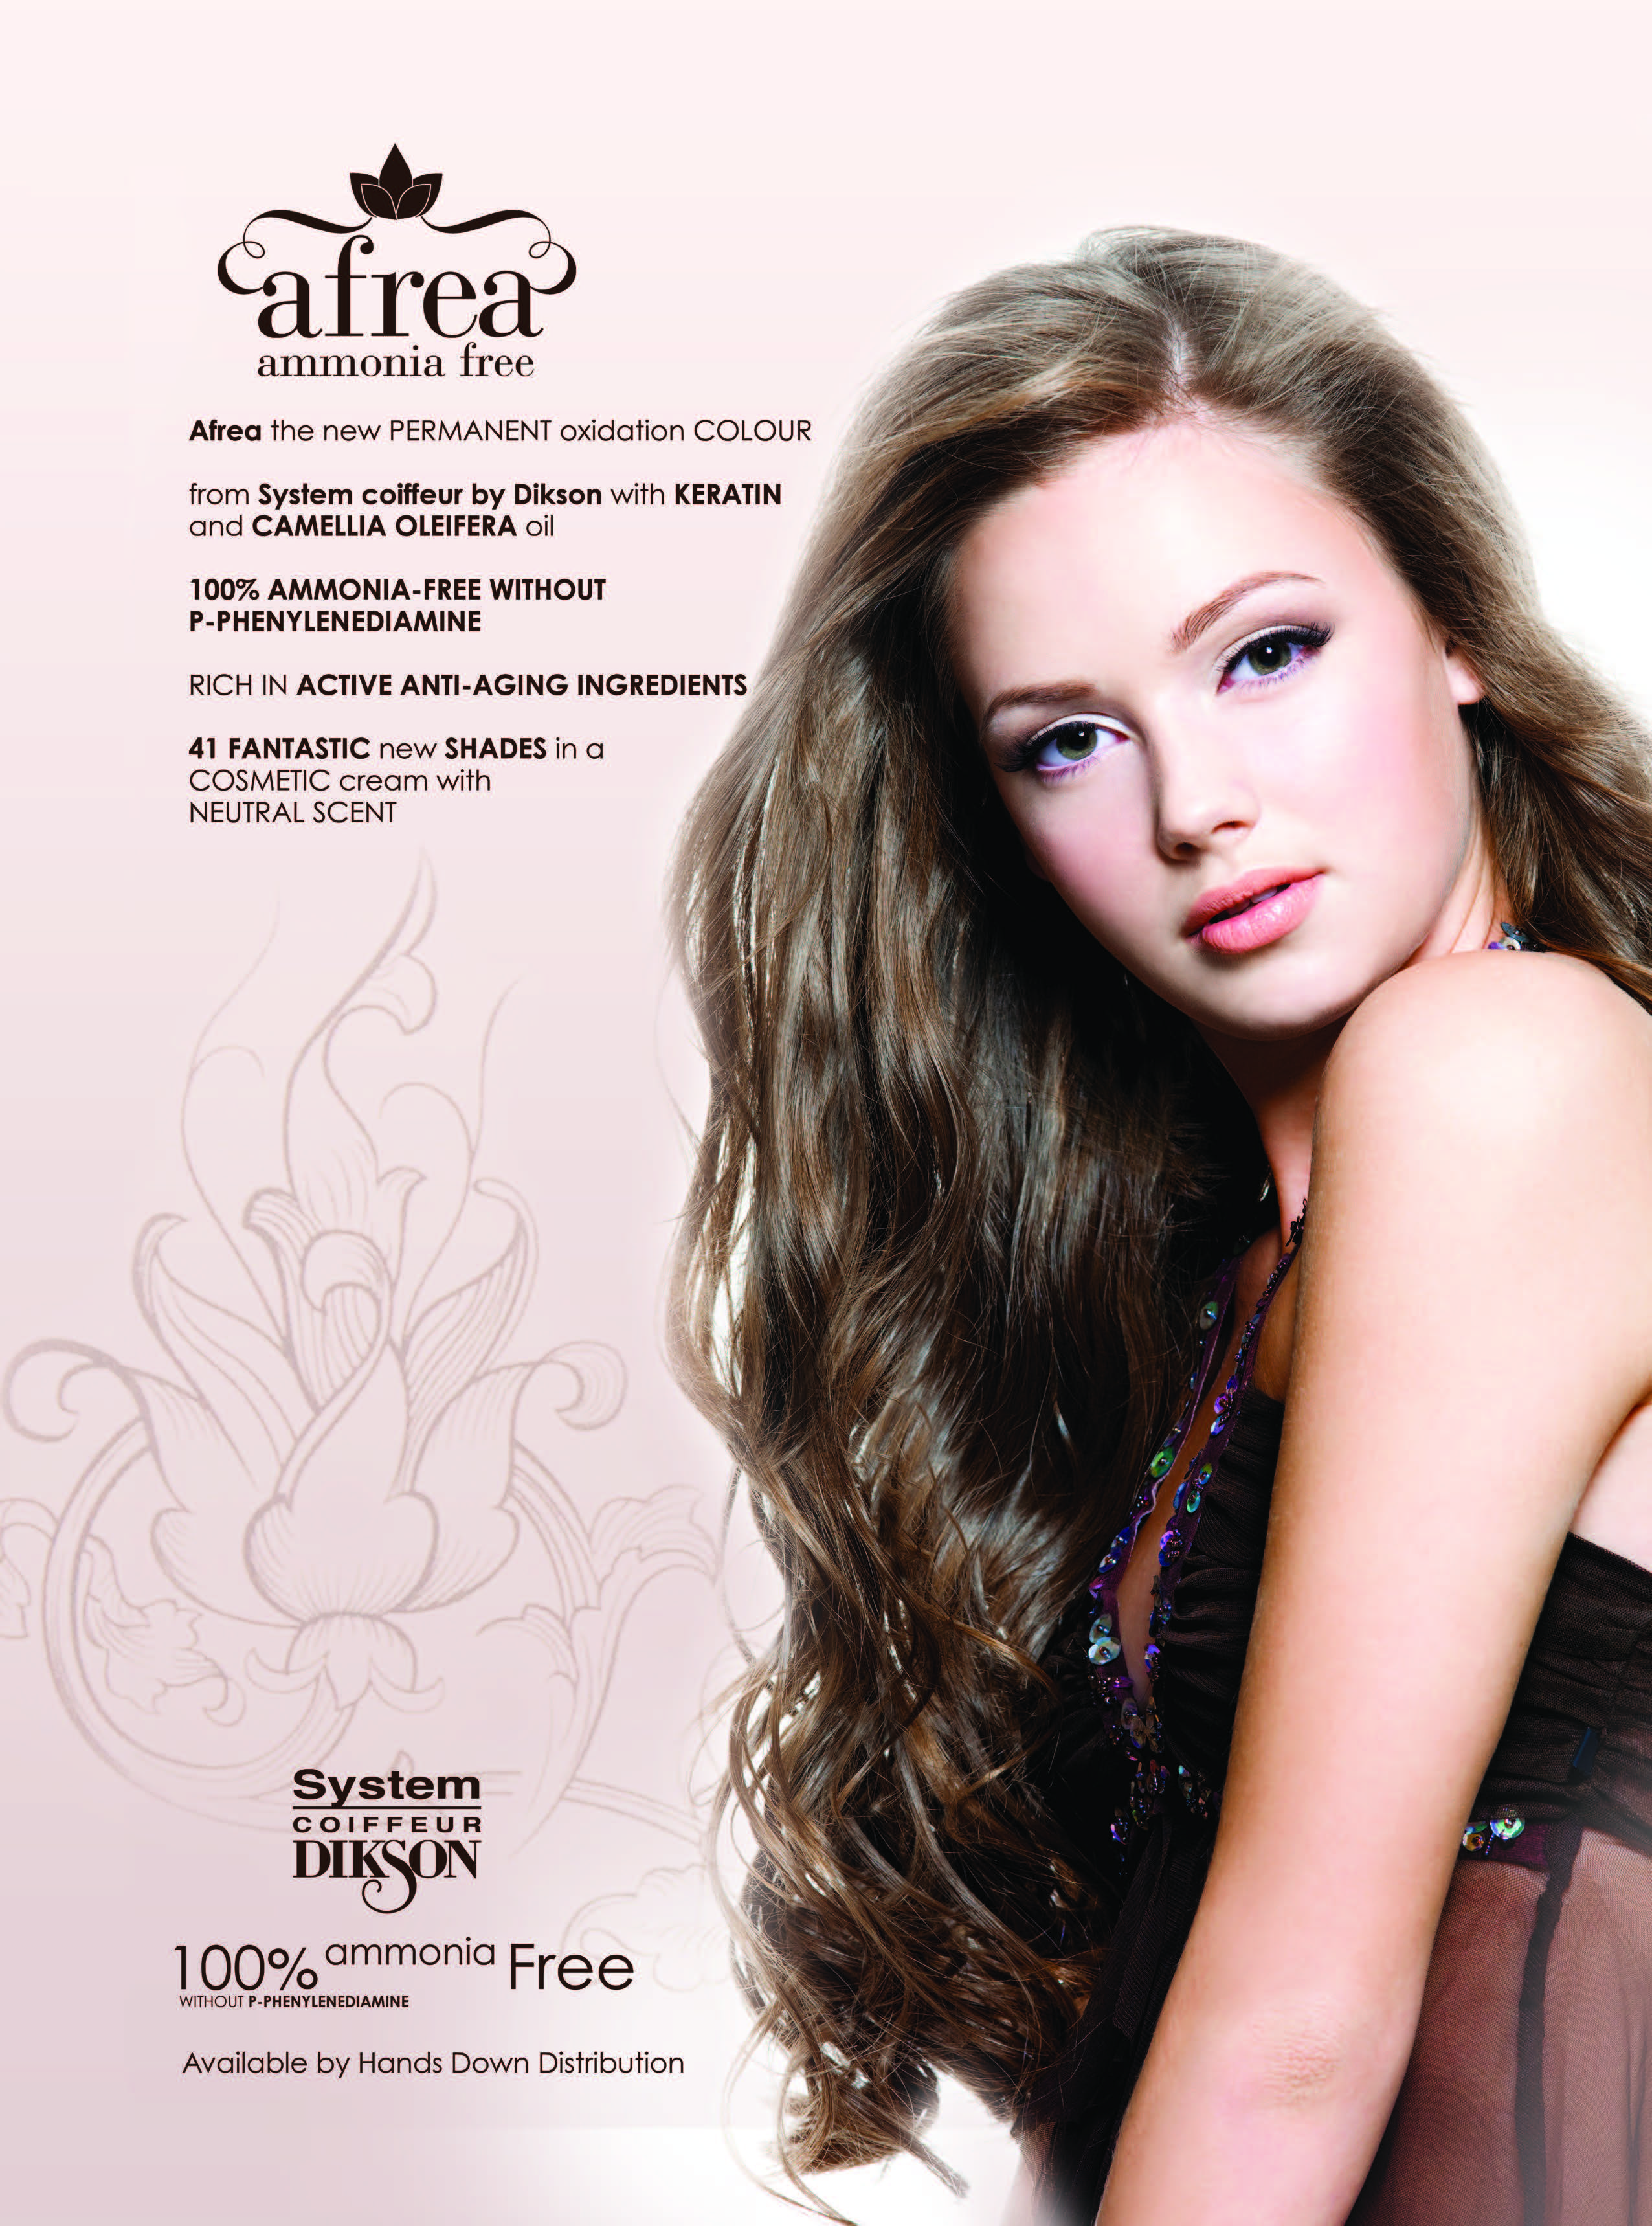 Afrea Ammonia Free is the new permanent colour that is